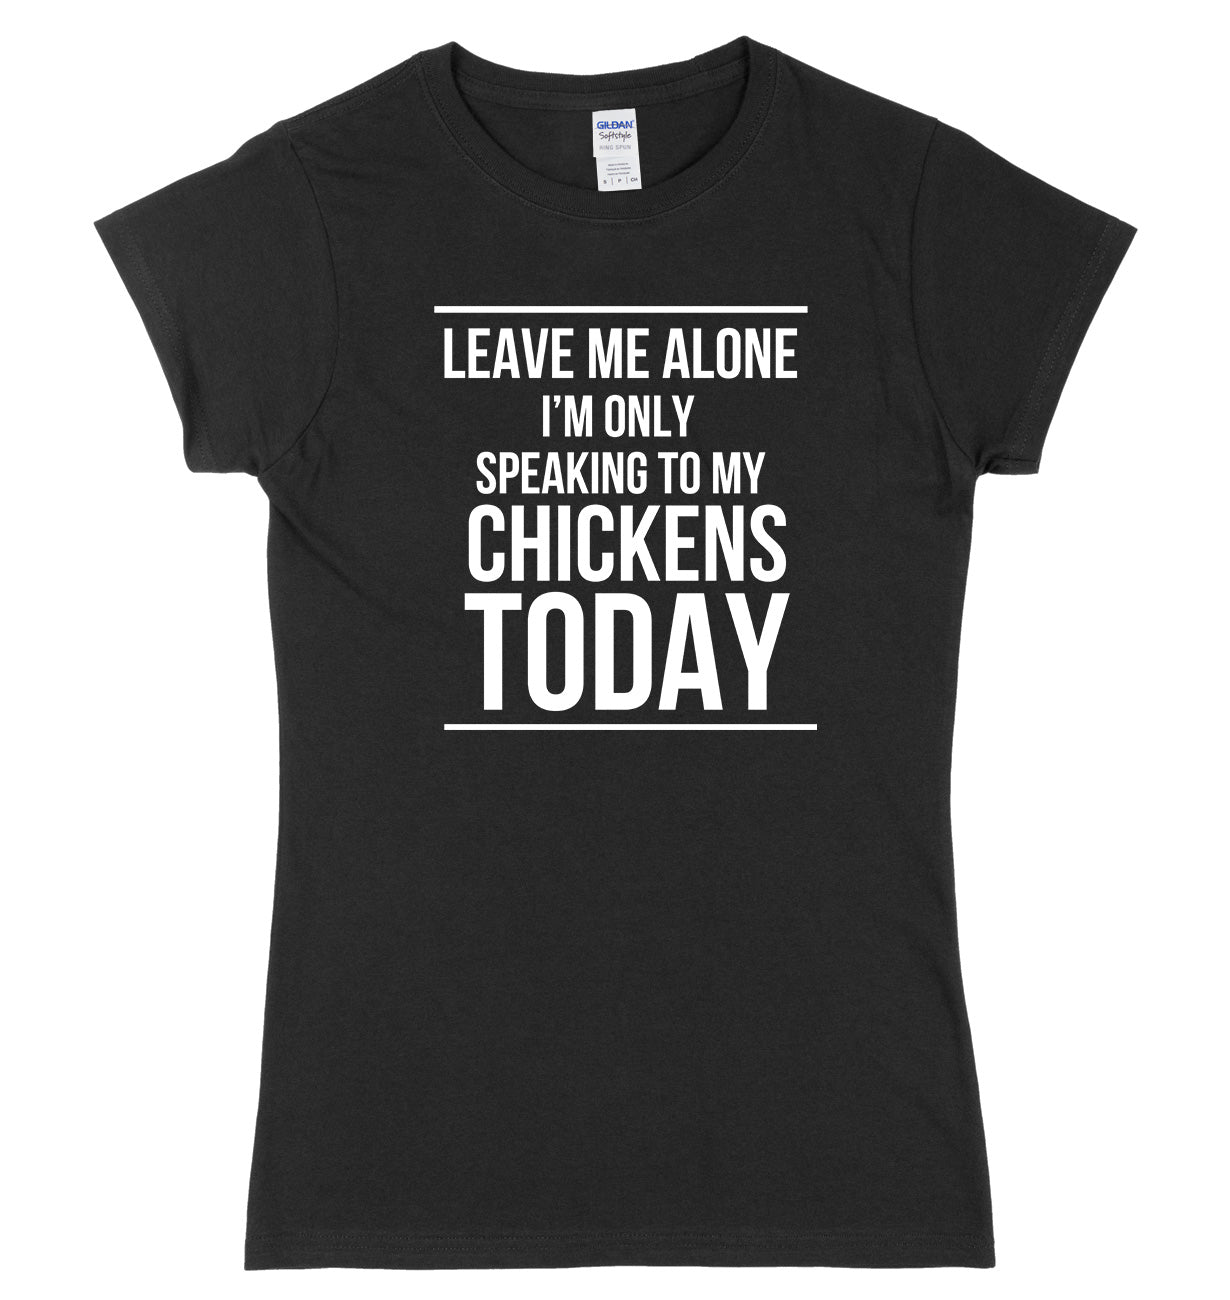 LEAVE ME ALONE I'M ONLY SPEAKING TO MY CHICKENS TODAY FUNNY WOMENS LADIES SLIM FIT  T-SHIRT